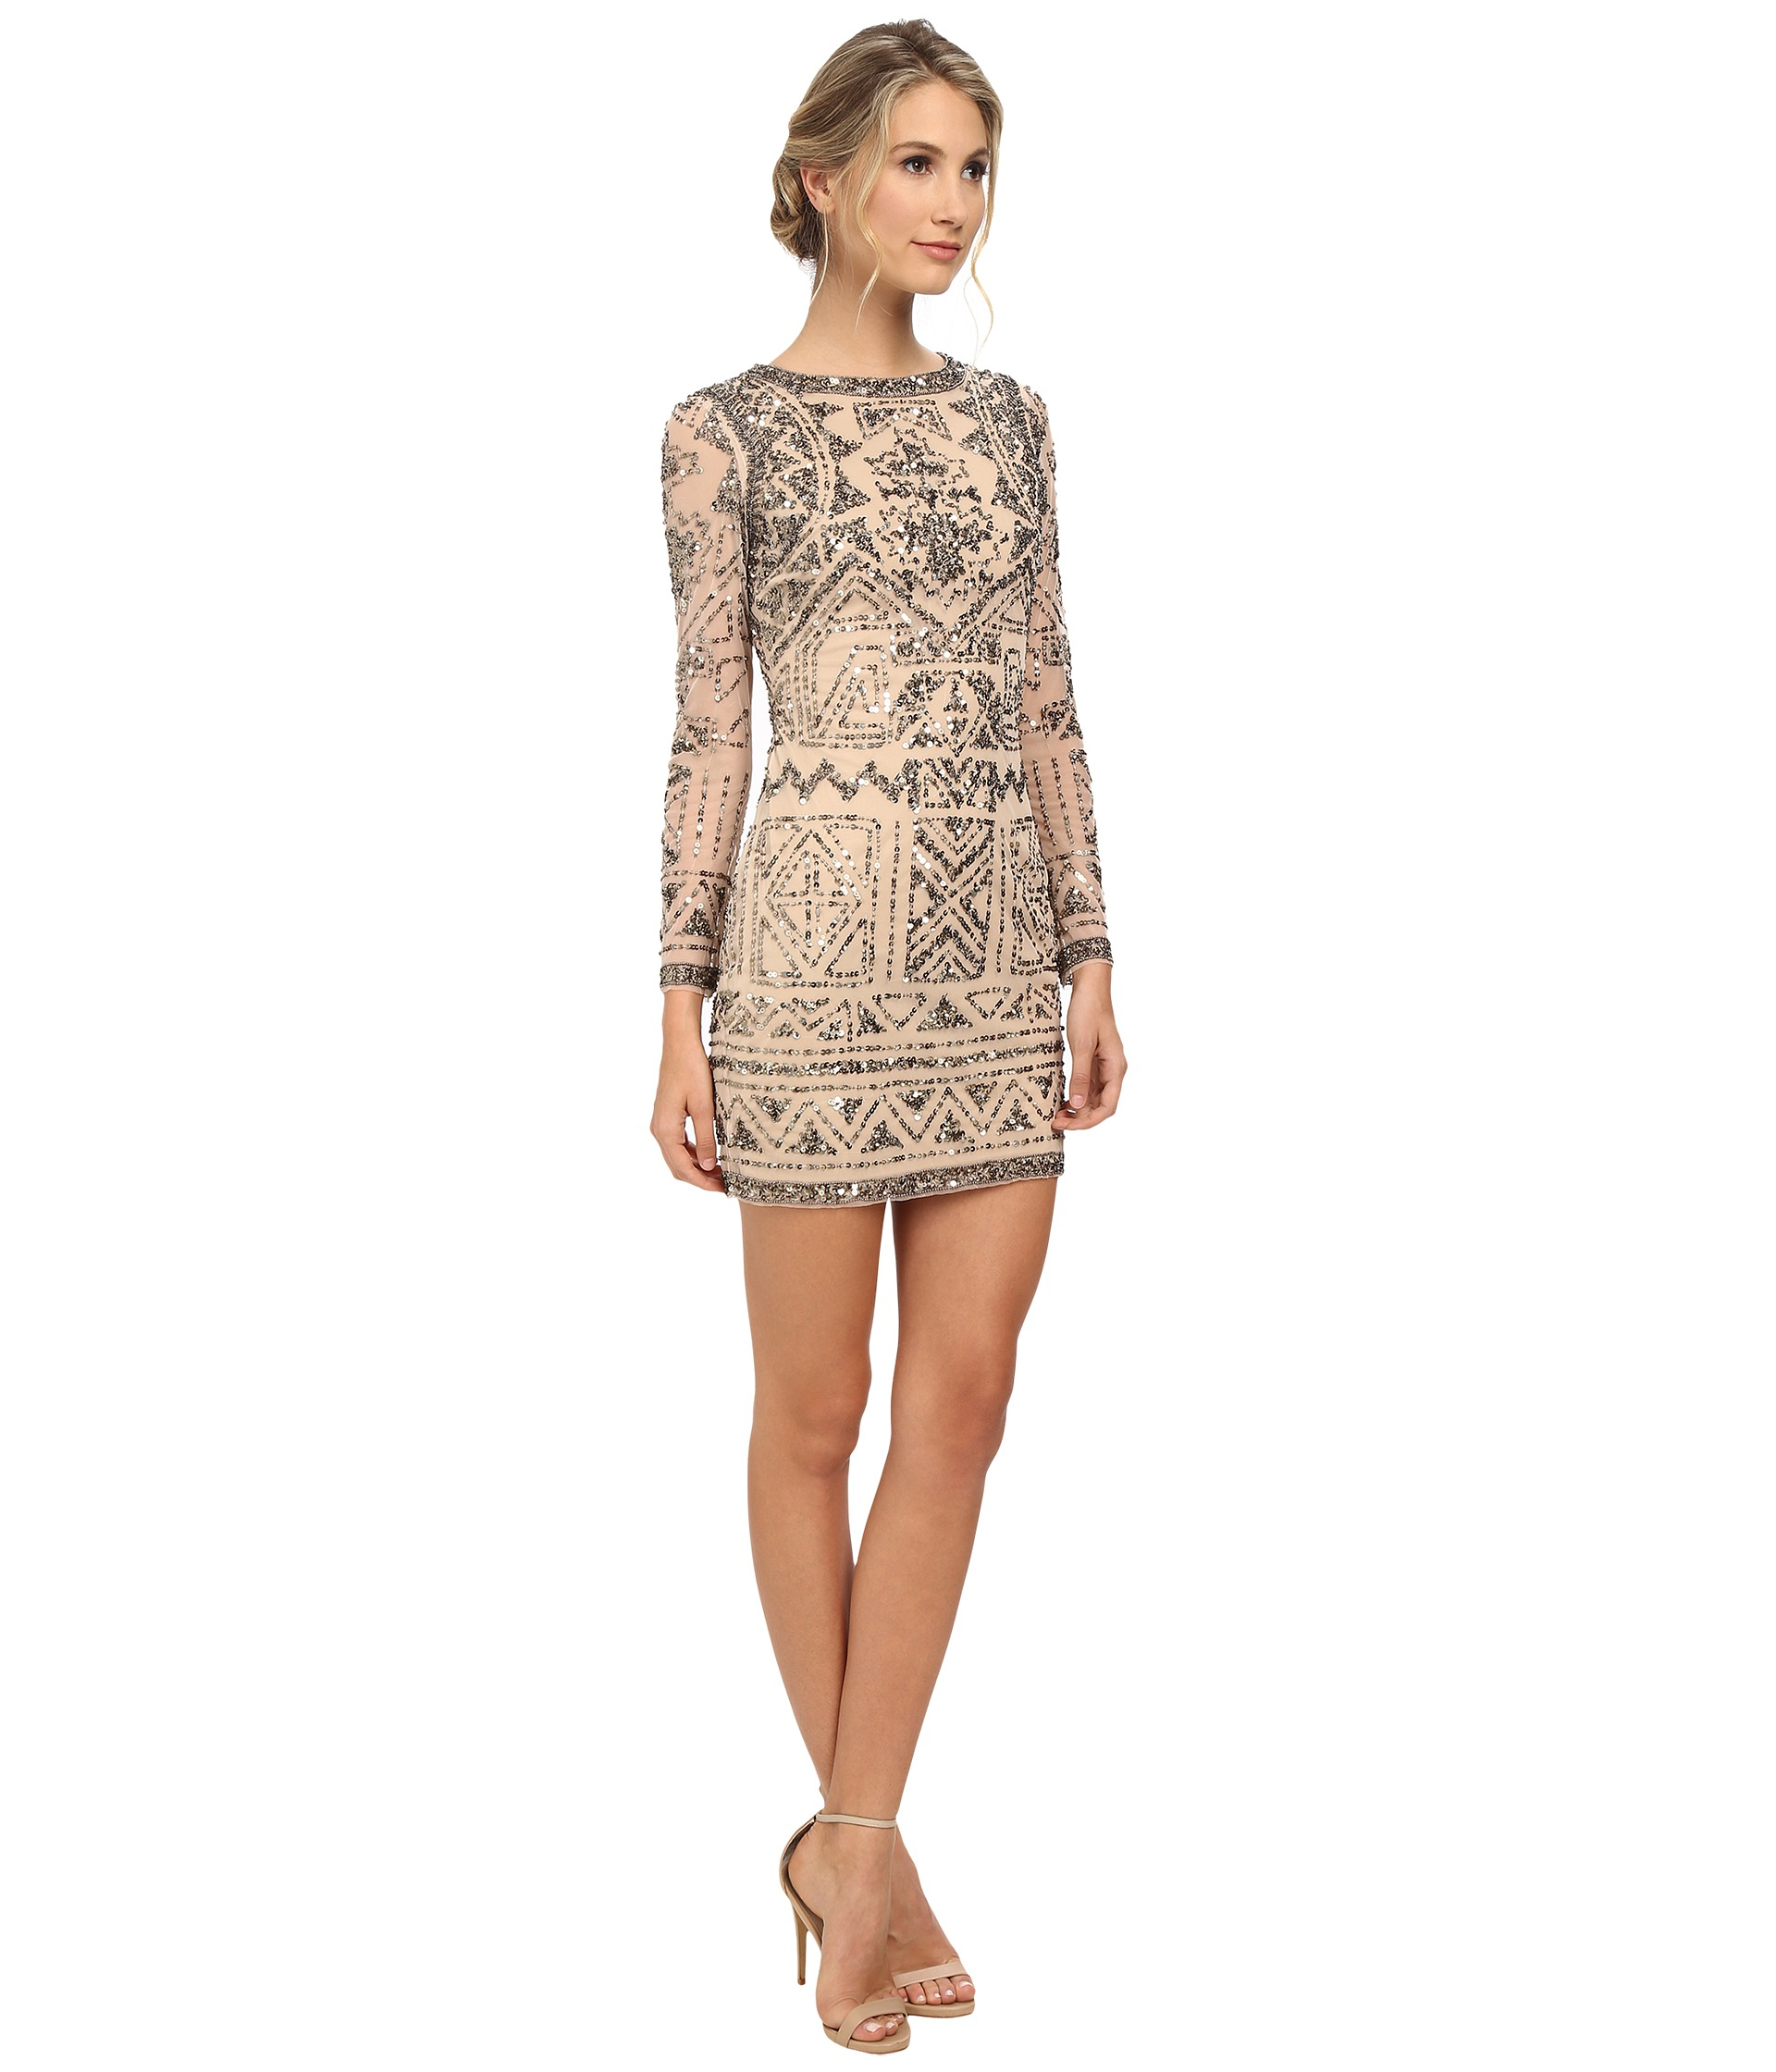 Lyst - Adrianna Papell Long Sleeve Beaded Cocktail Dress in Natural